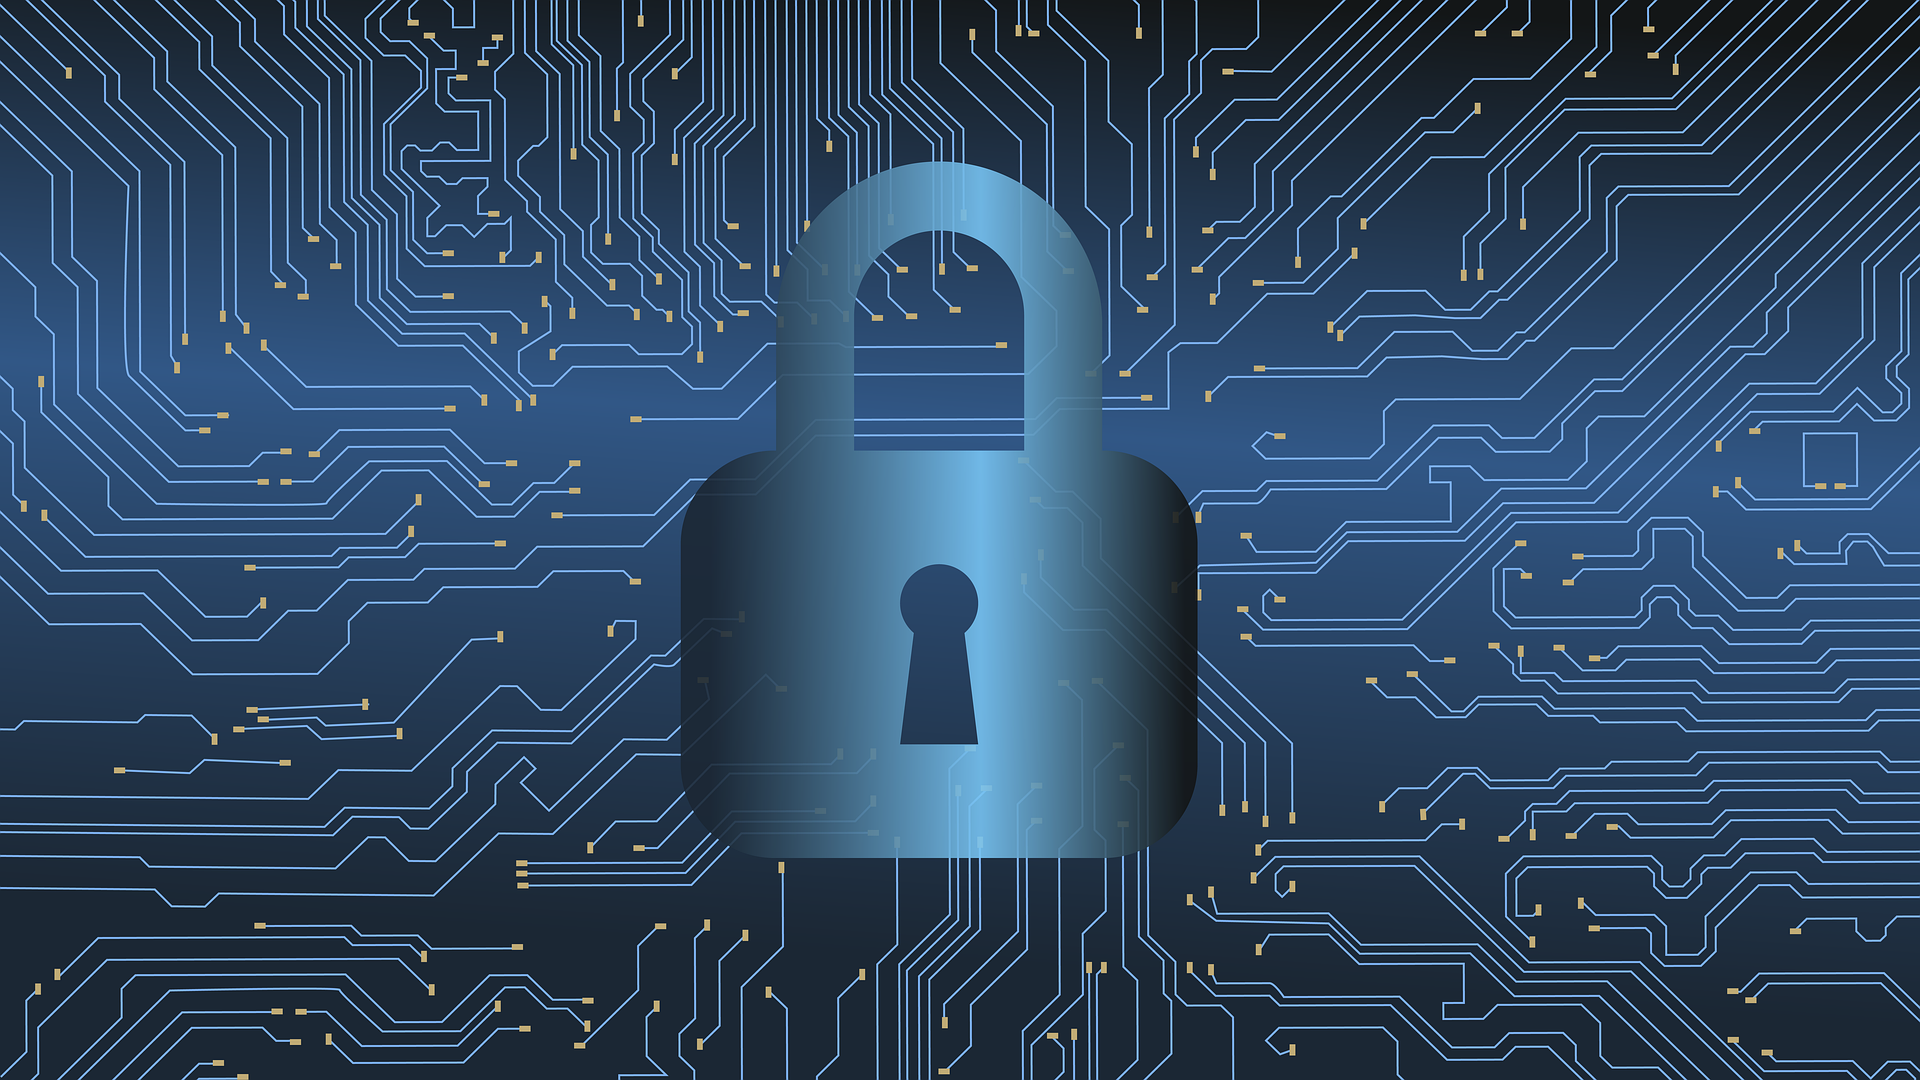 Cybersecurity graphic with lock icon